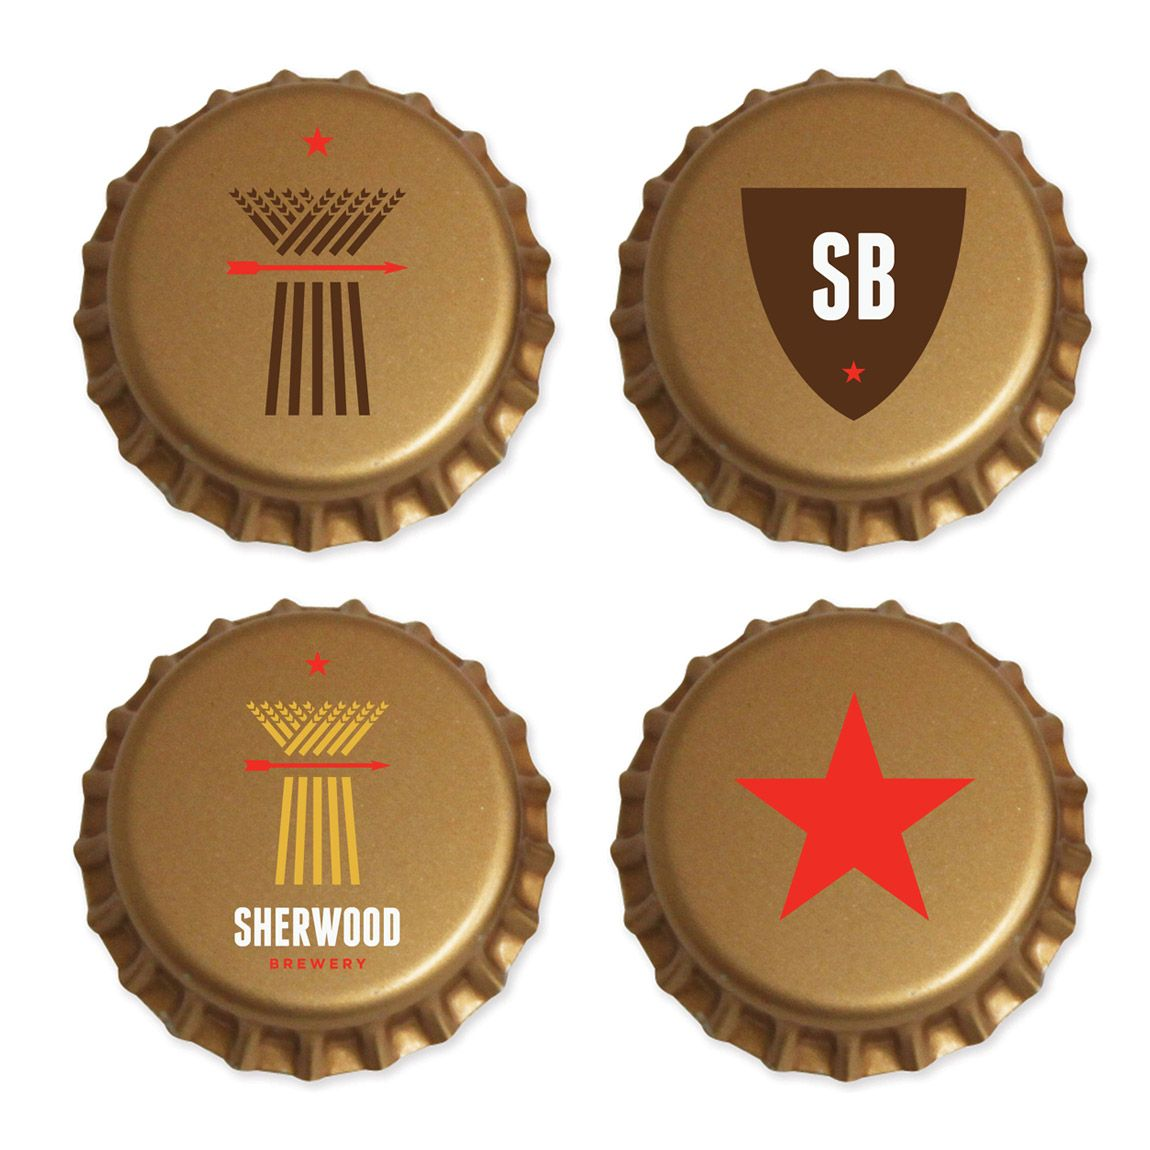 Bottle Cap Packaging Design for Sherwood Brewery (With